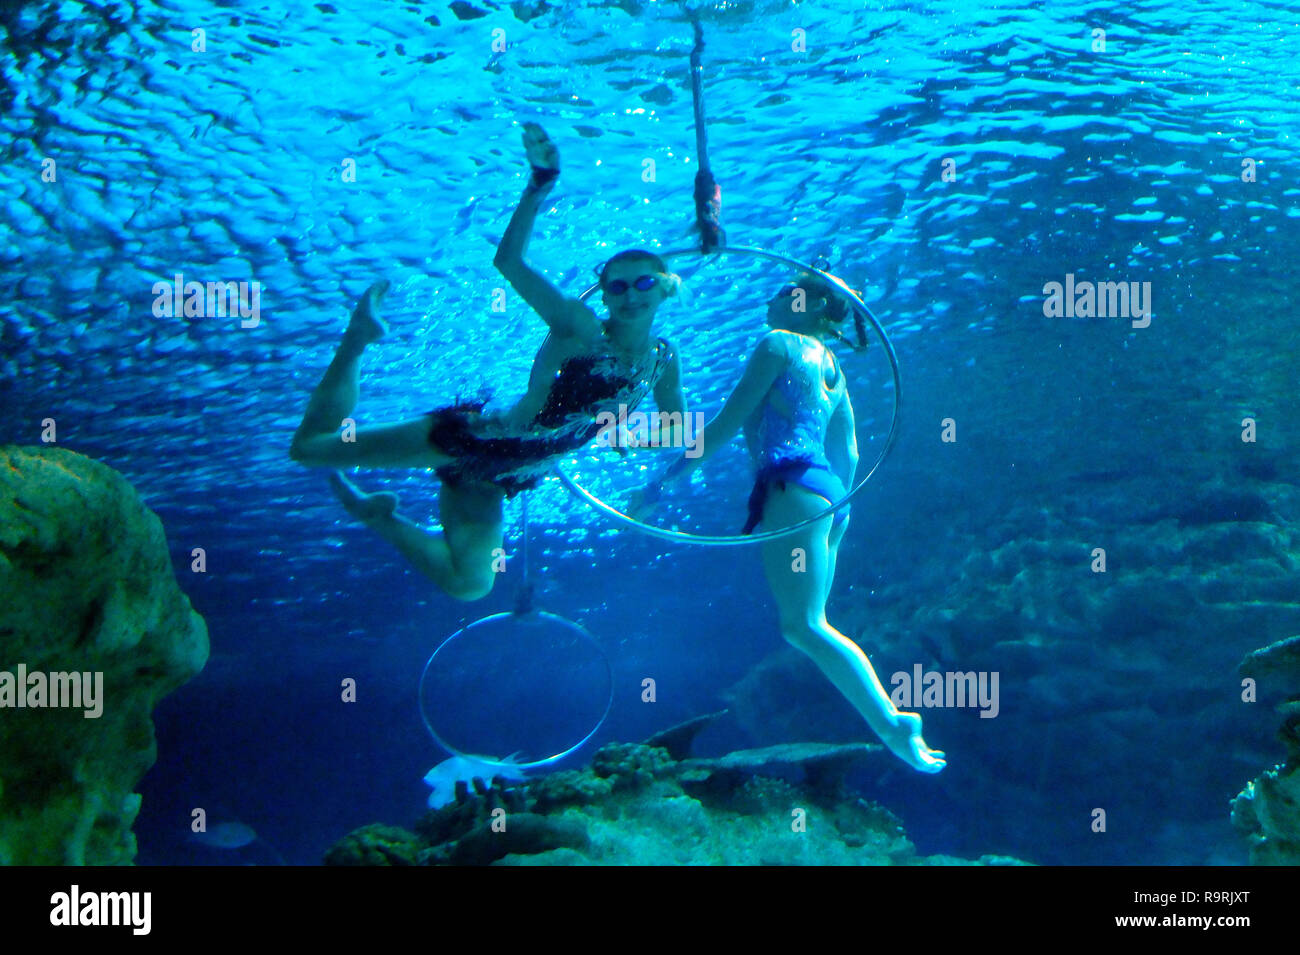 Real underwater world Hidden City Beijing Chinabeijing Fuguo Underwater World Is Located At South Gate Of Worker Stadium Chaoyang District Which Is The First Fivestar Marine Aquarium In Beijing Beijing China 27th Dec 2018 Beijing Chinabeijing